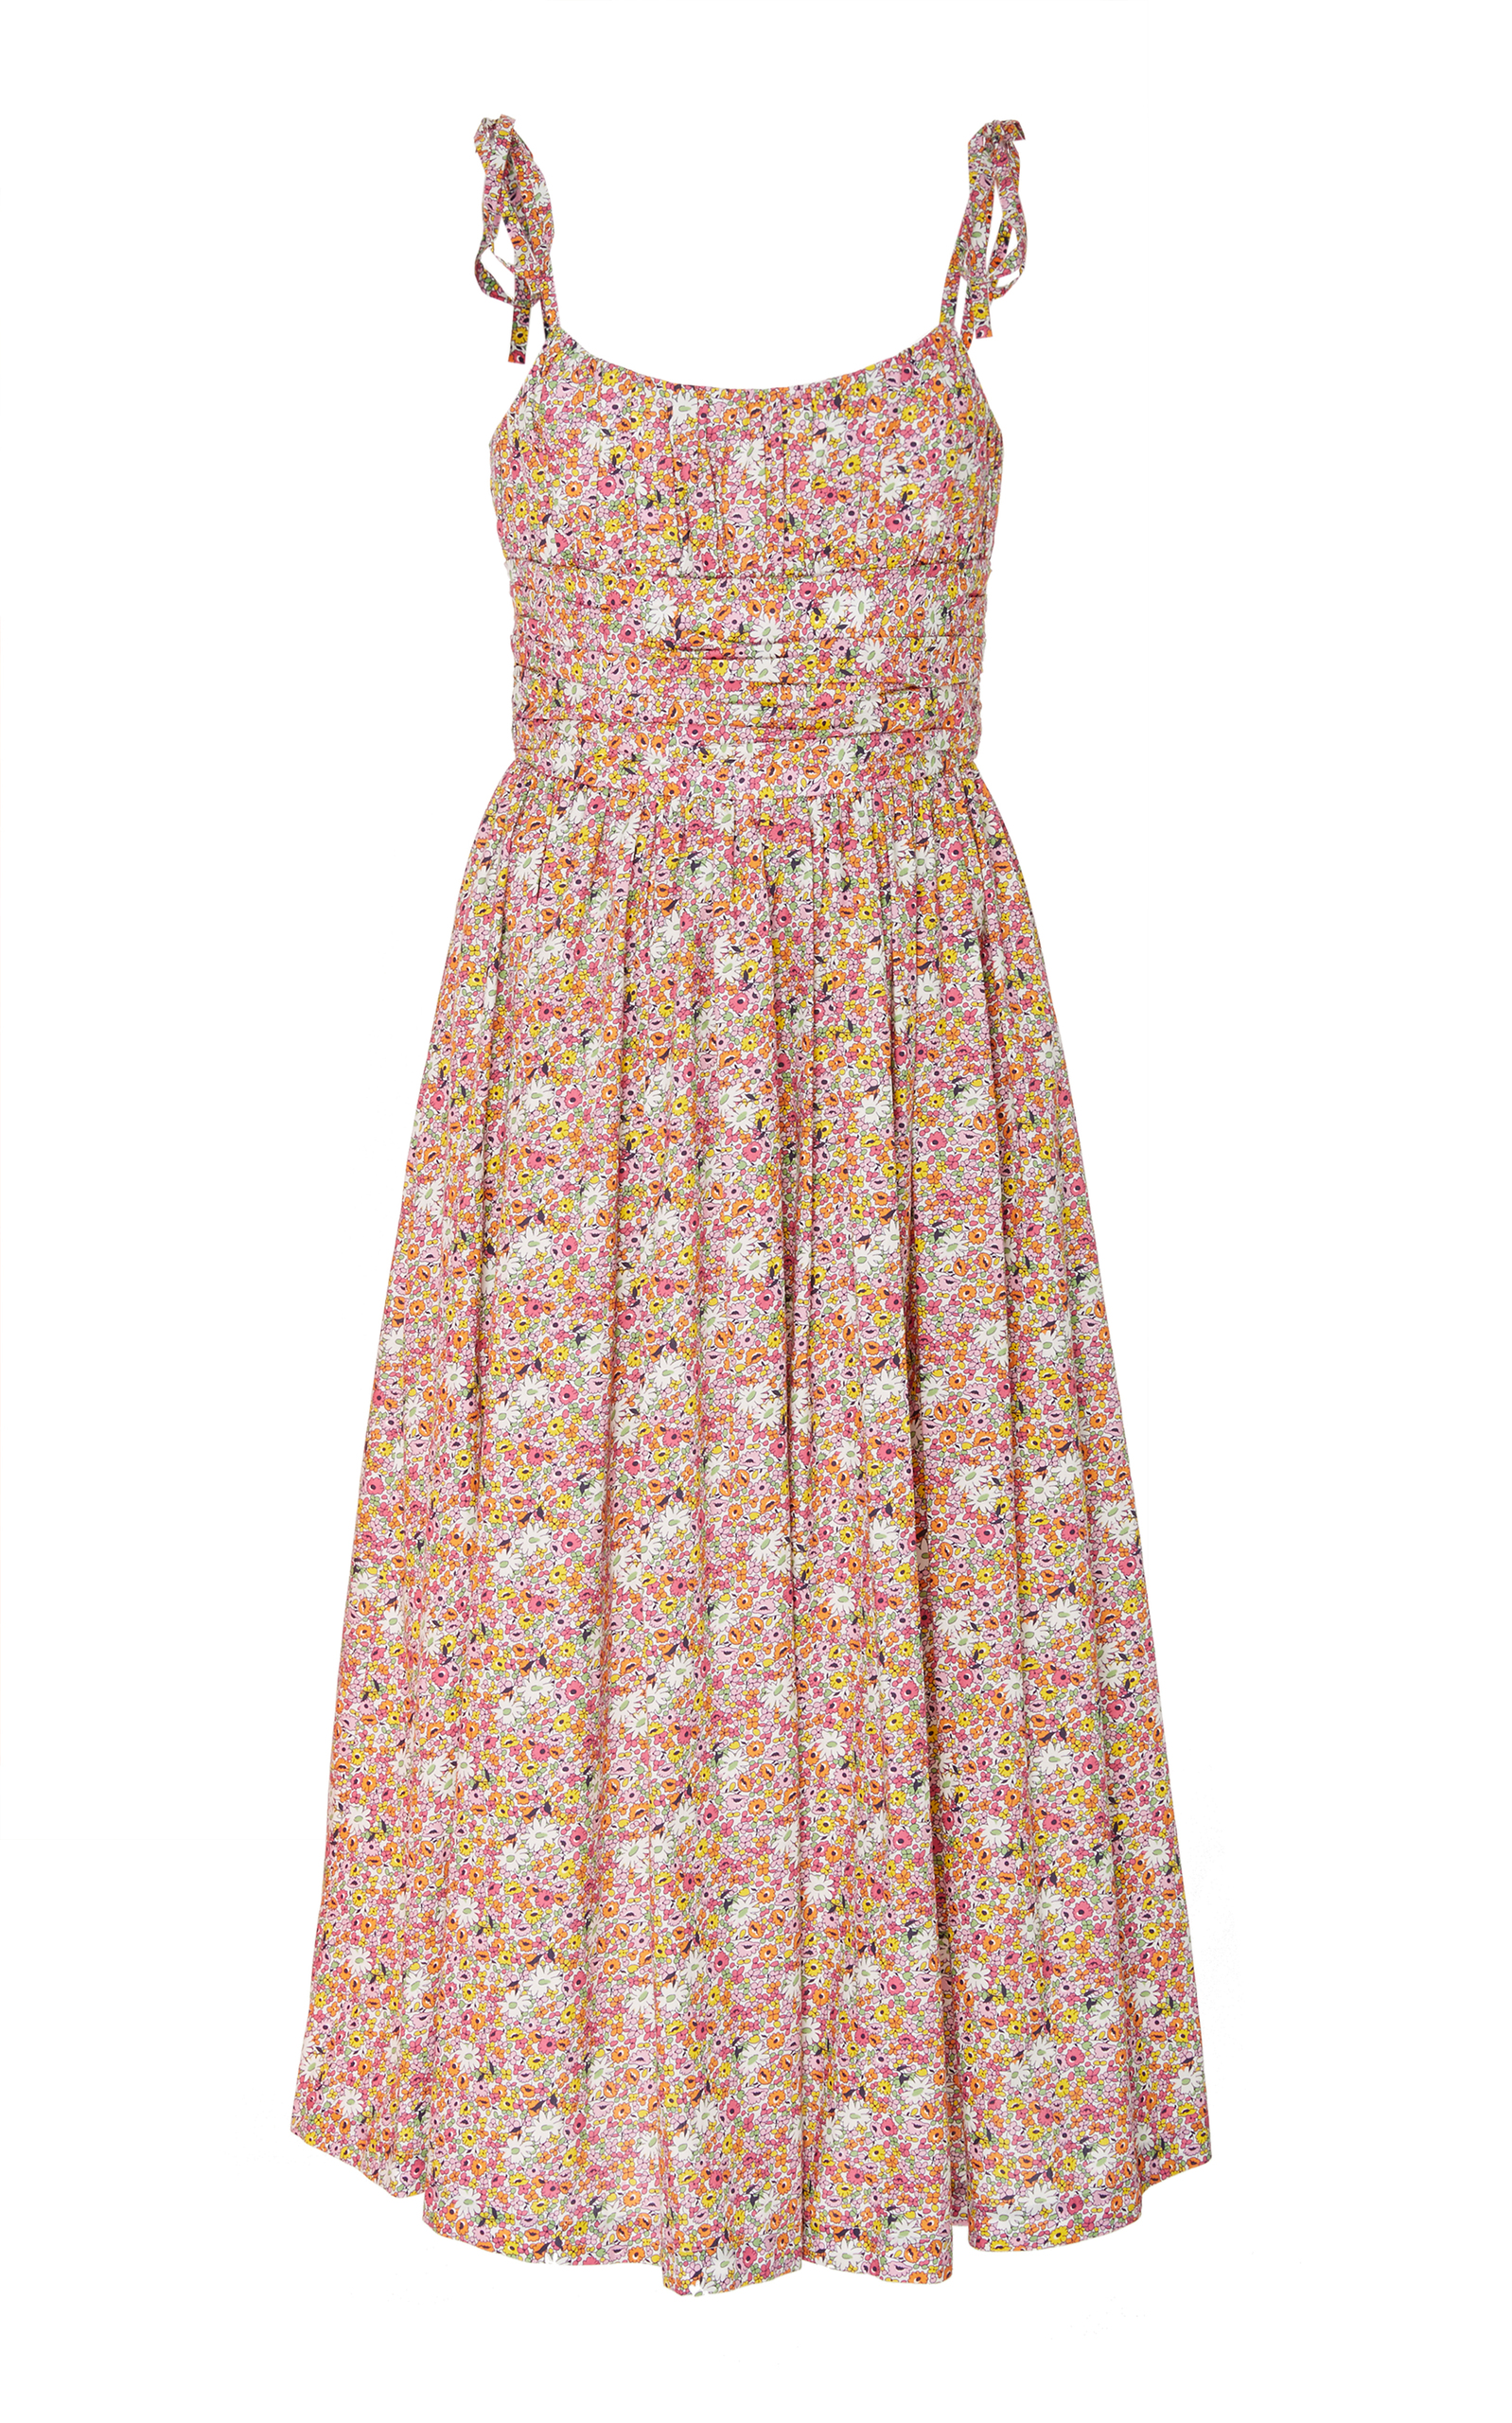 Cami Dress With Shearing, Floral